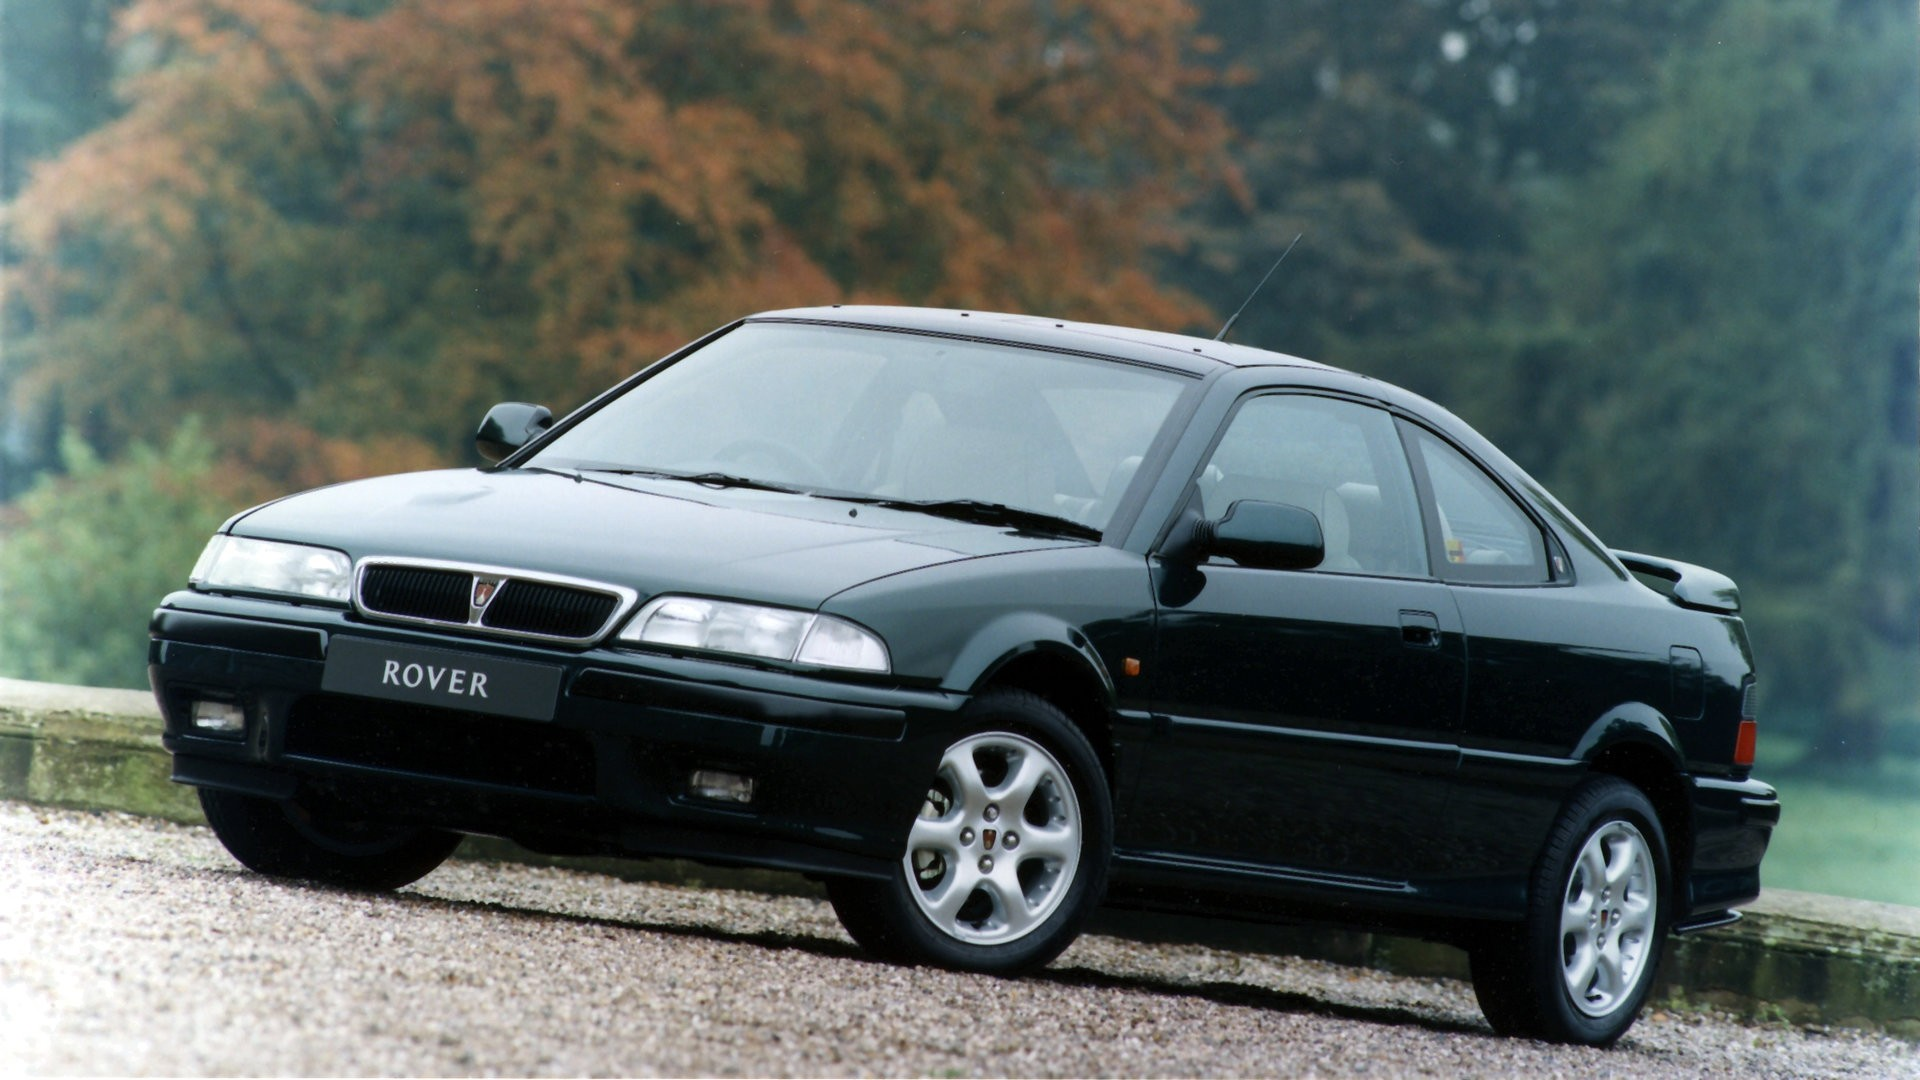 rover-220-coupe-turbo-4.jpg